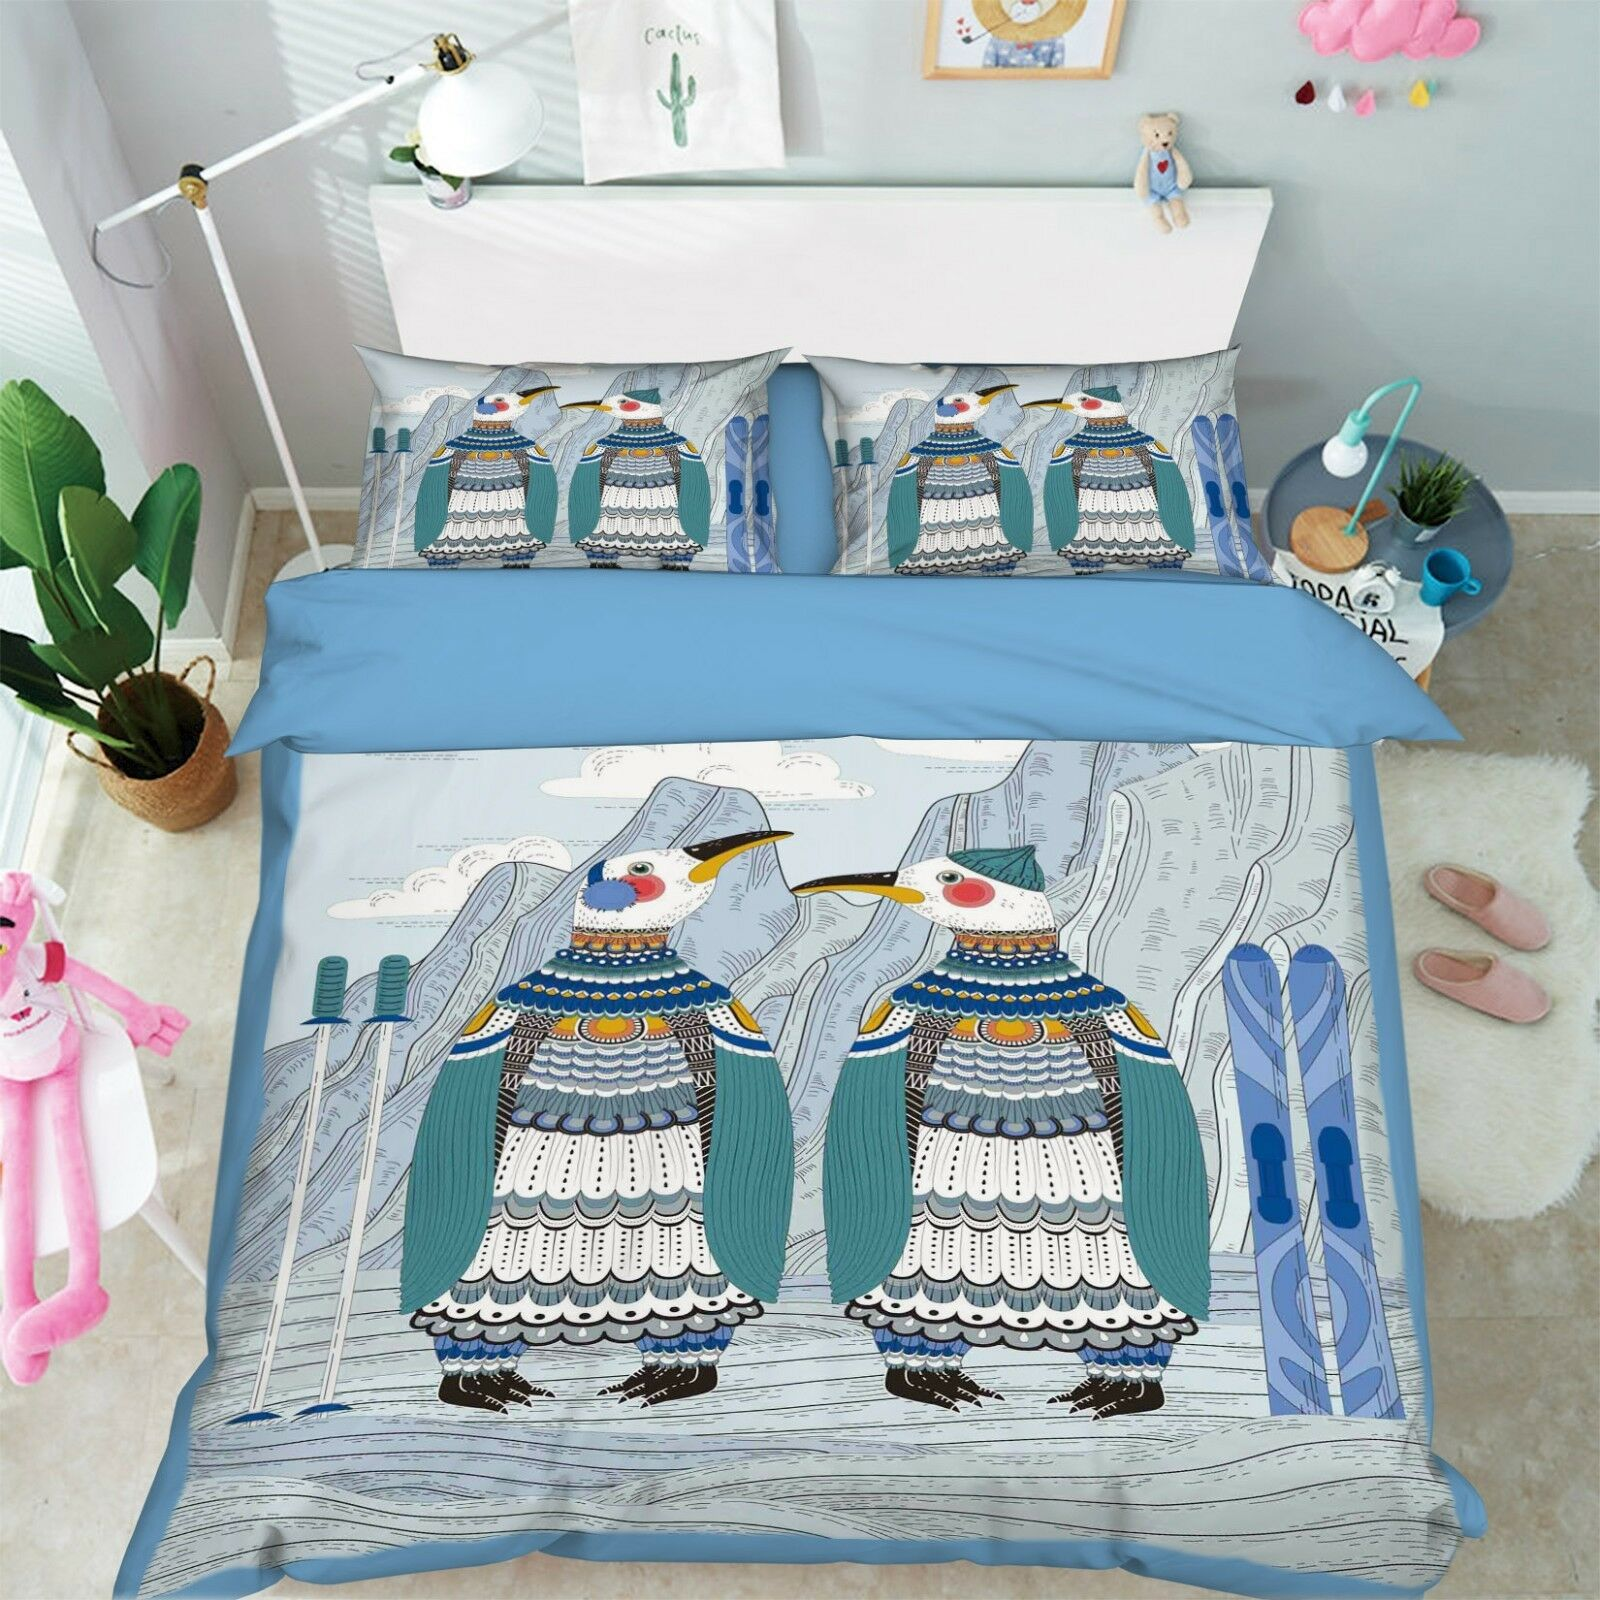 3D Penguins 151 Bed Pillowcases Quilt Duvet Cover Set Single Queen King Size AU